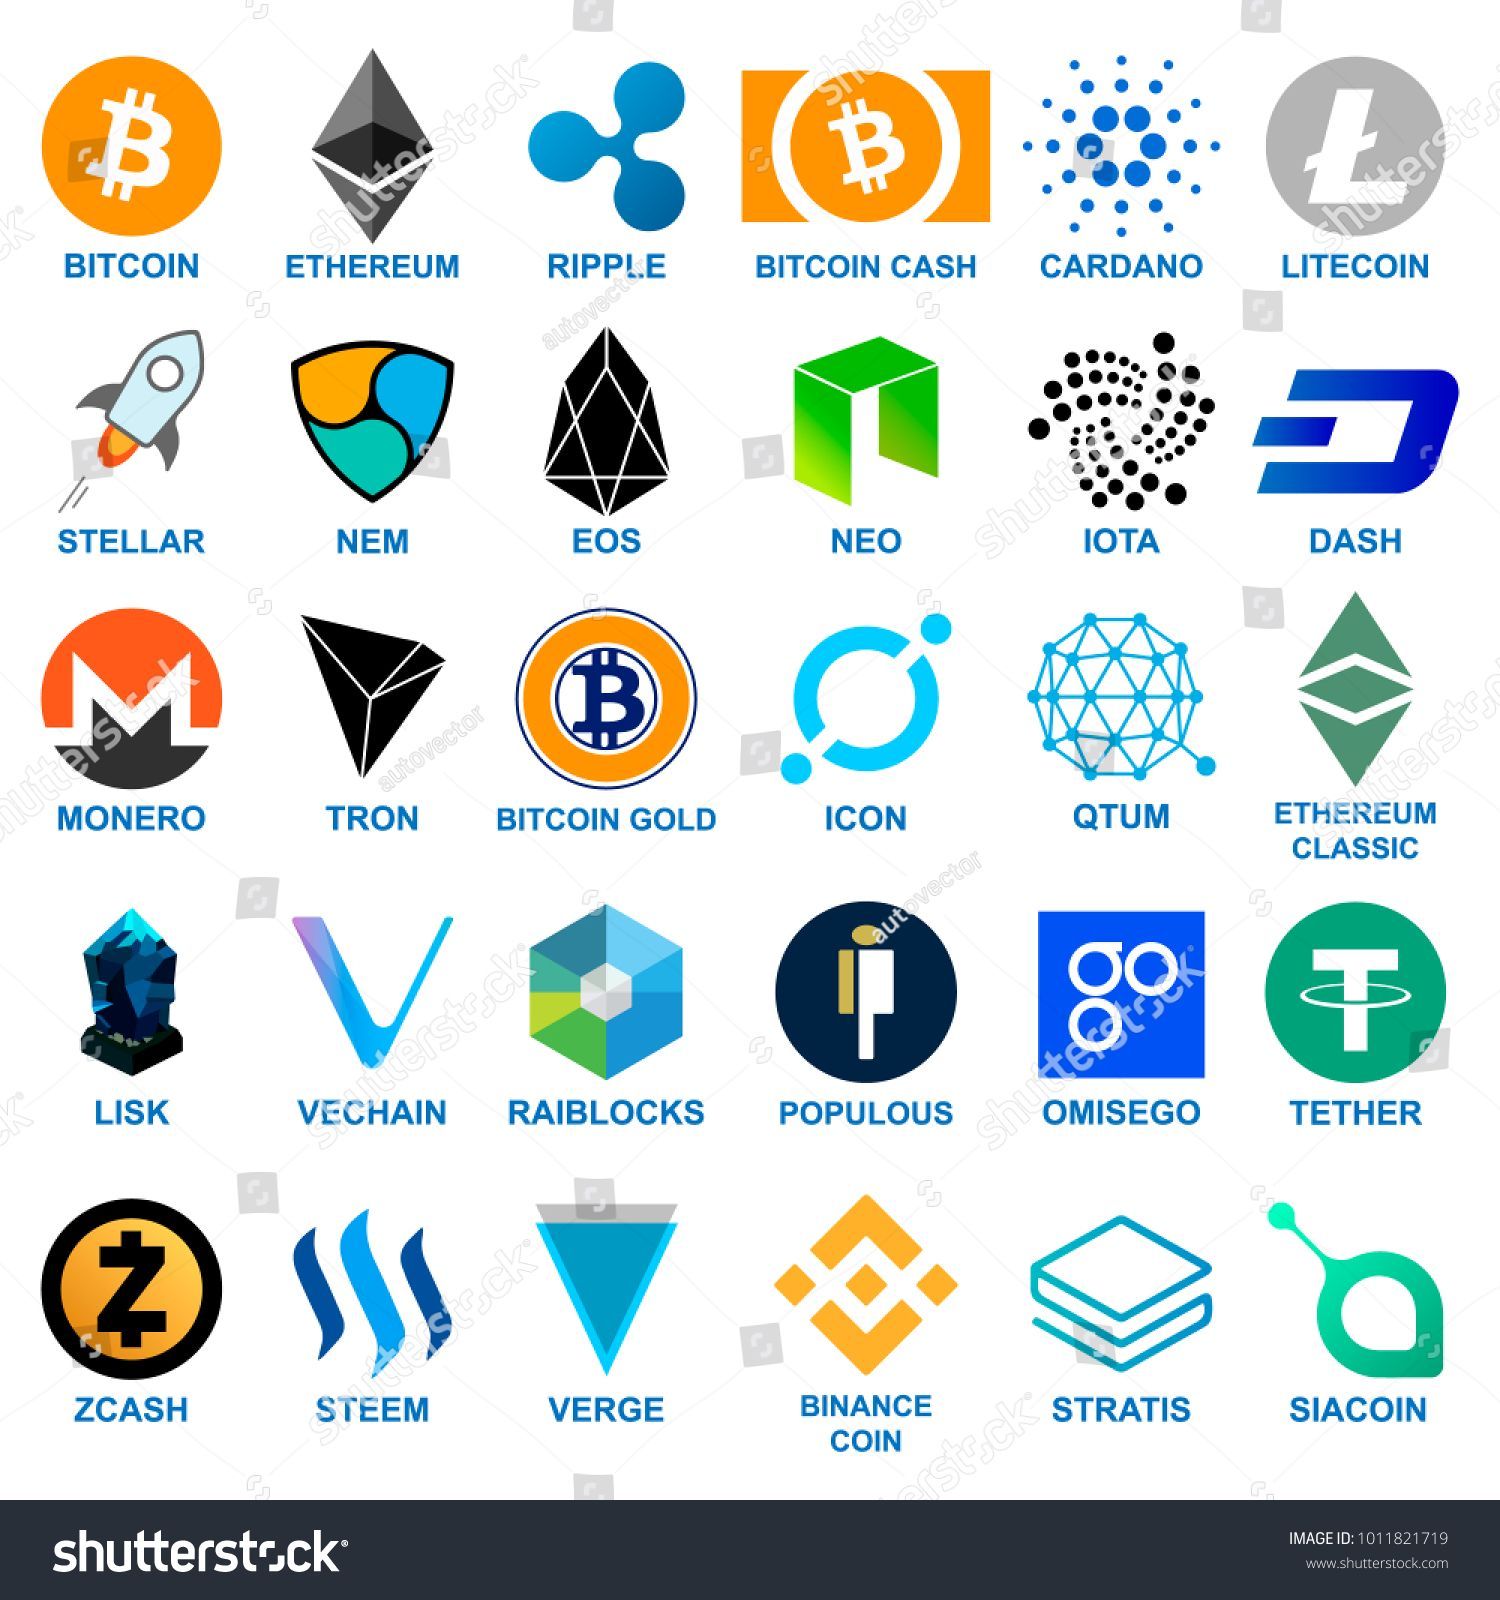 Cryptocurrency logo set. Blockchain cryptocurrency